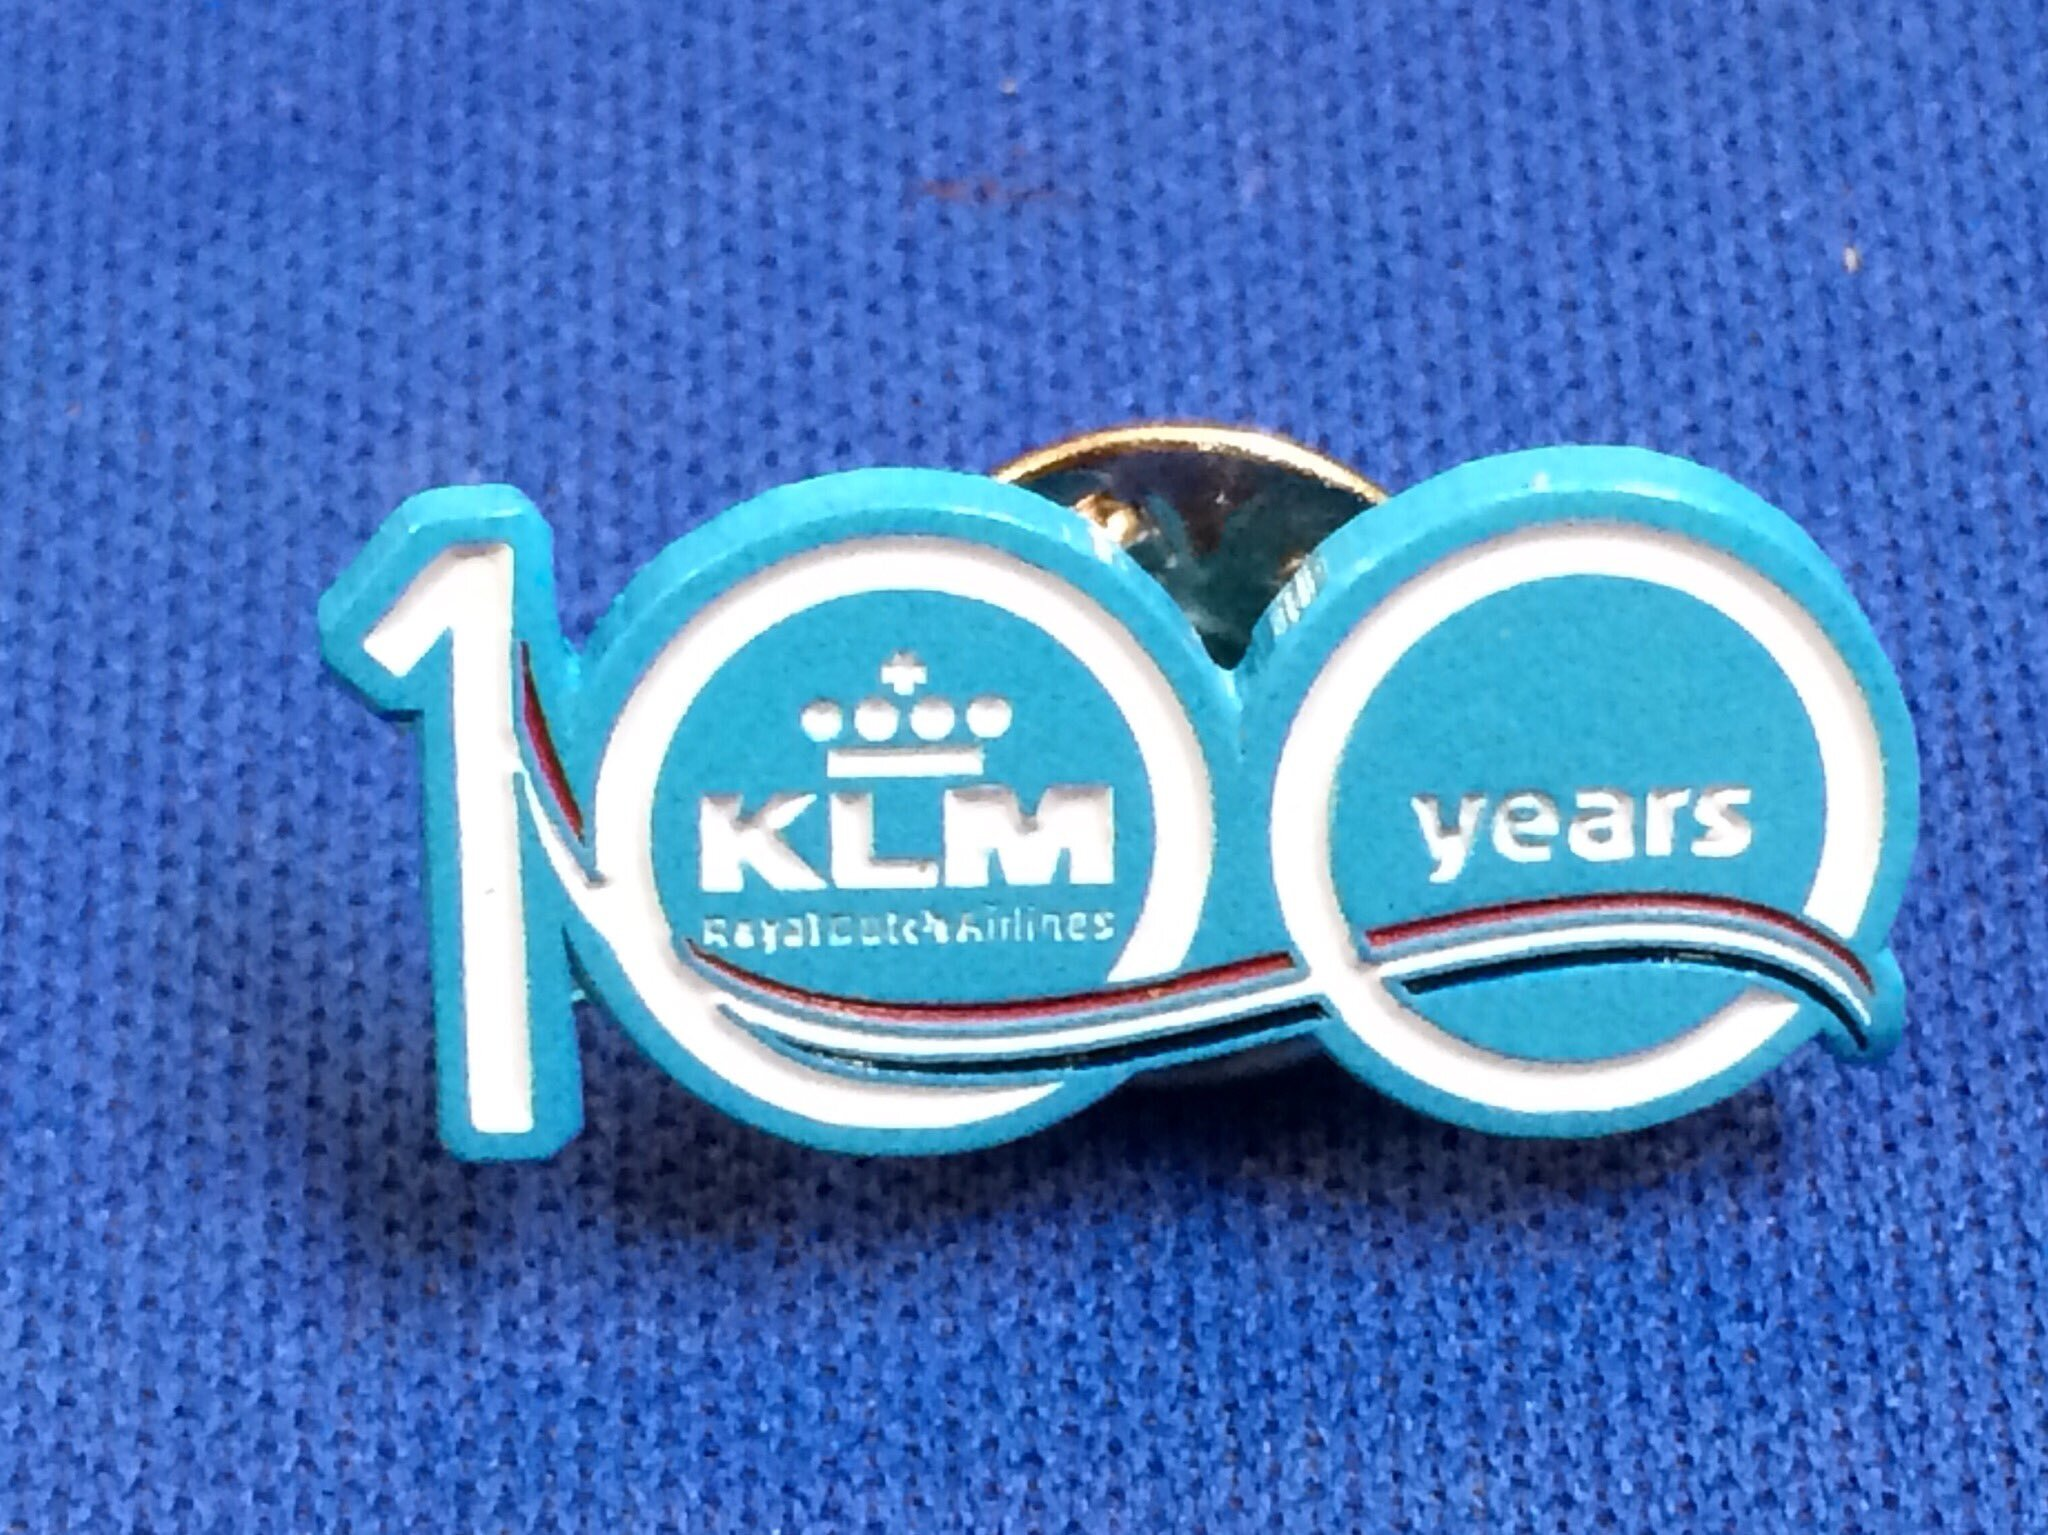 KLM100YEARS ピンバッジ